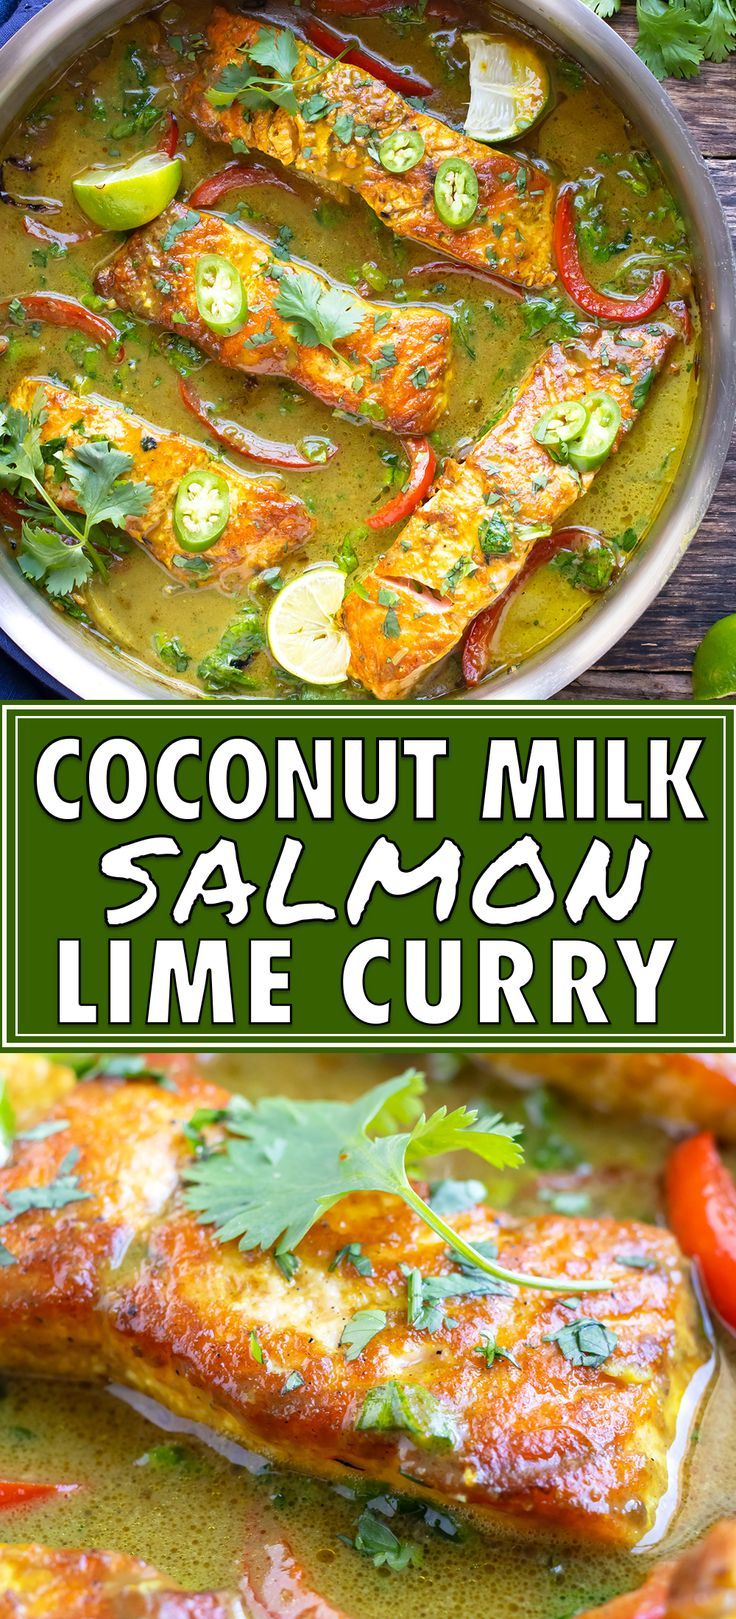 Easy Salmon Curry with Coconut Milk - Evolving Table